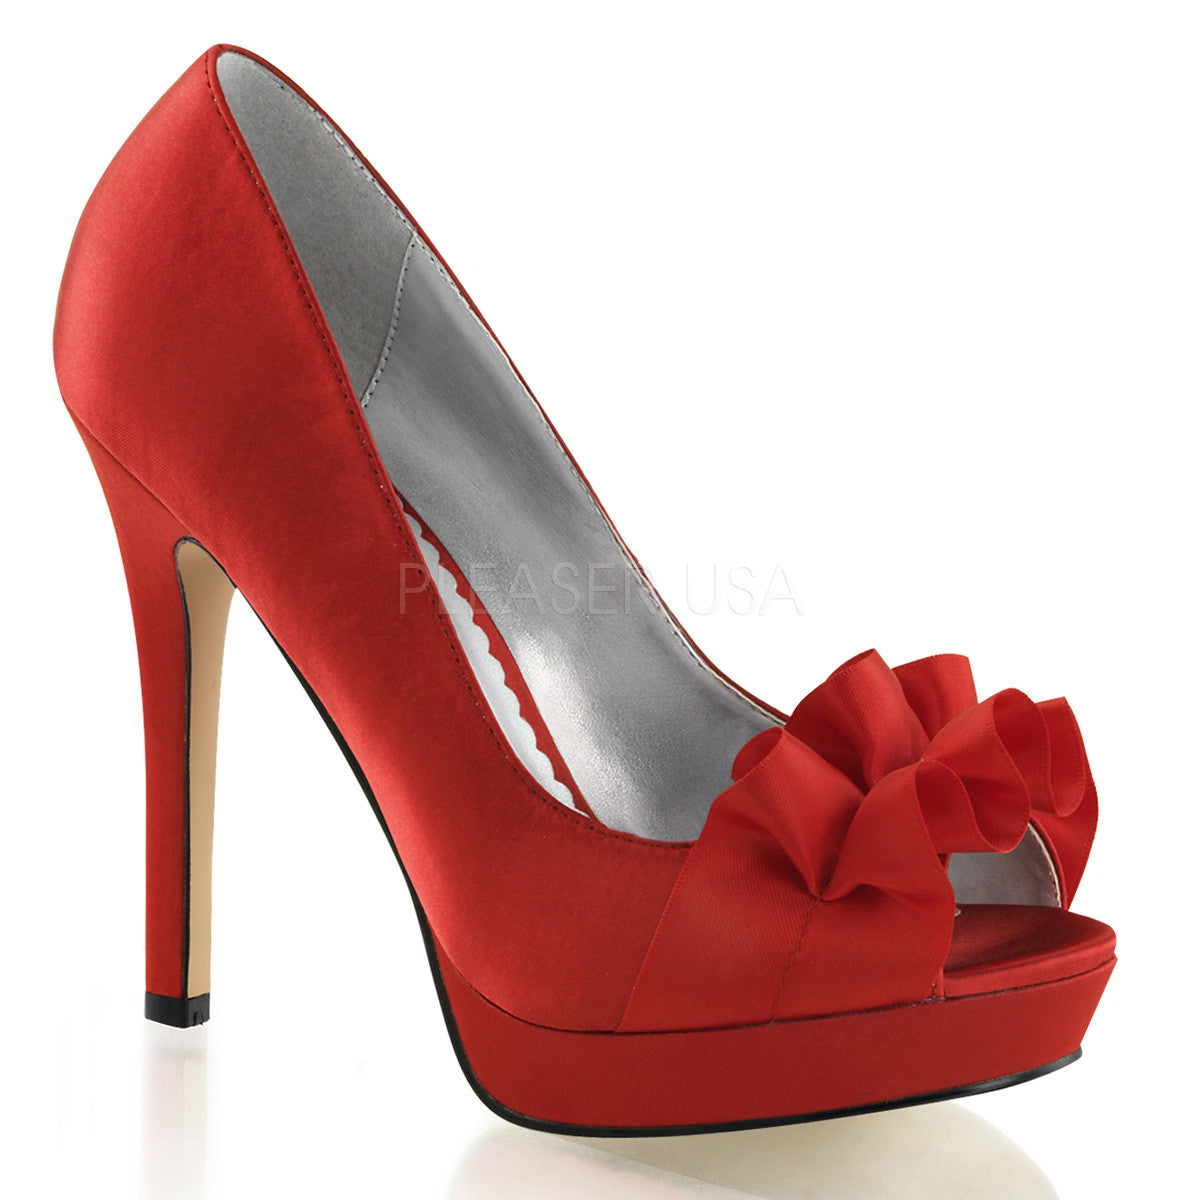 FABULICIOUS LUMINA-42 Red Satin Peep Toe Pumps - Shoecup.com